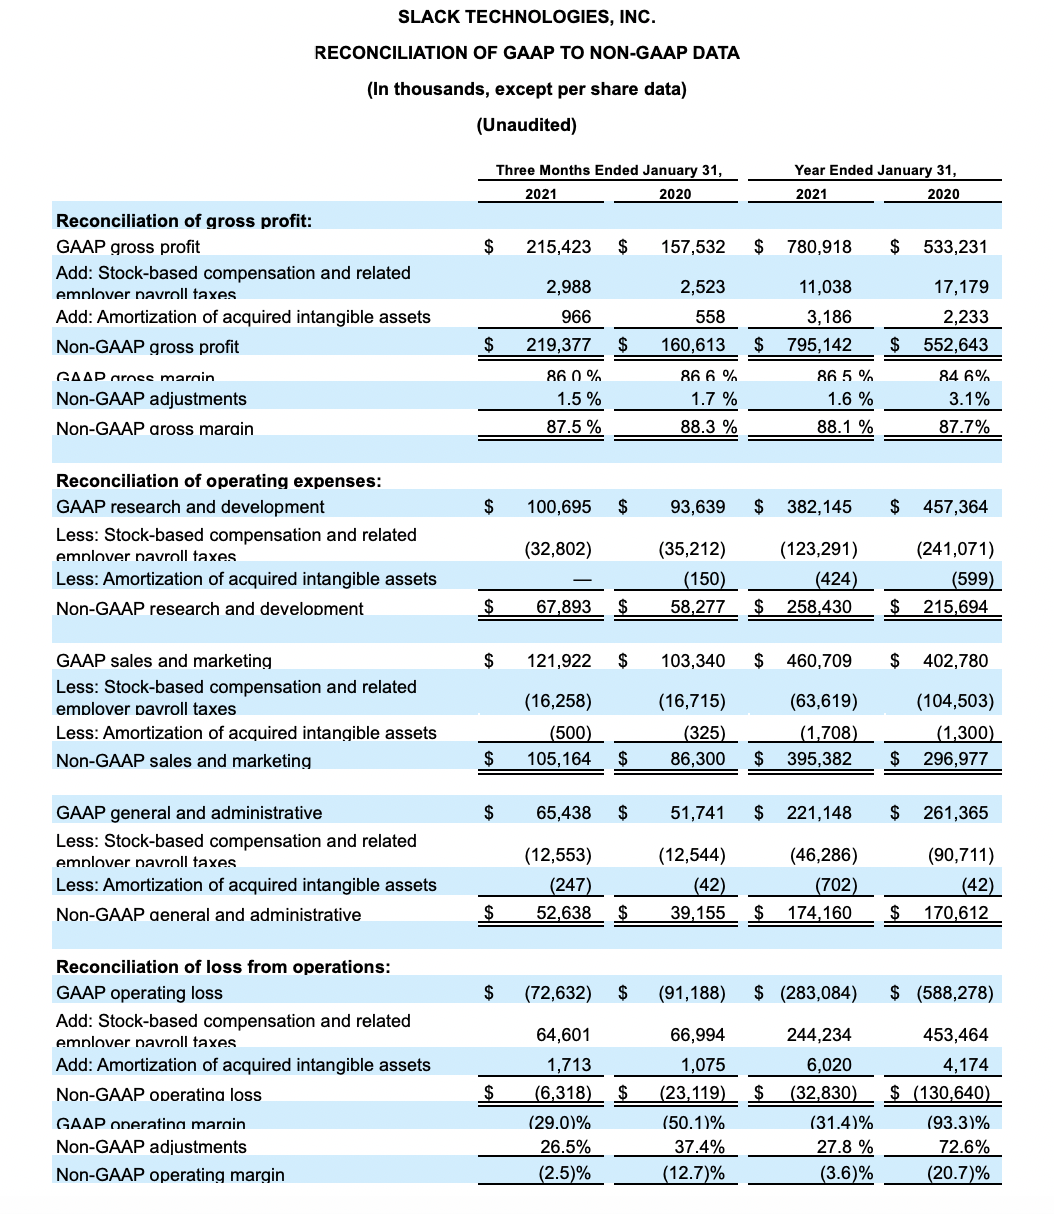 Financials Slack Technologies, Inc.